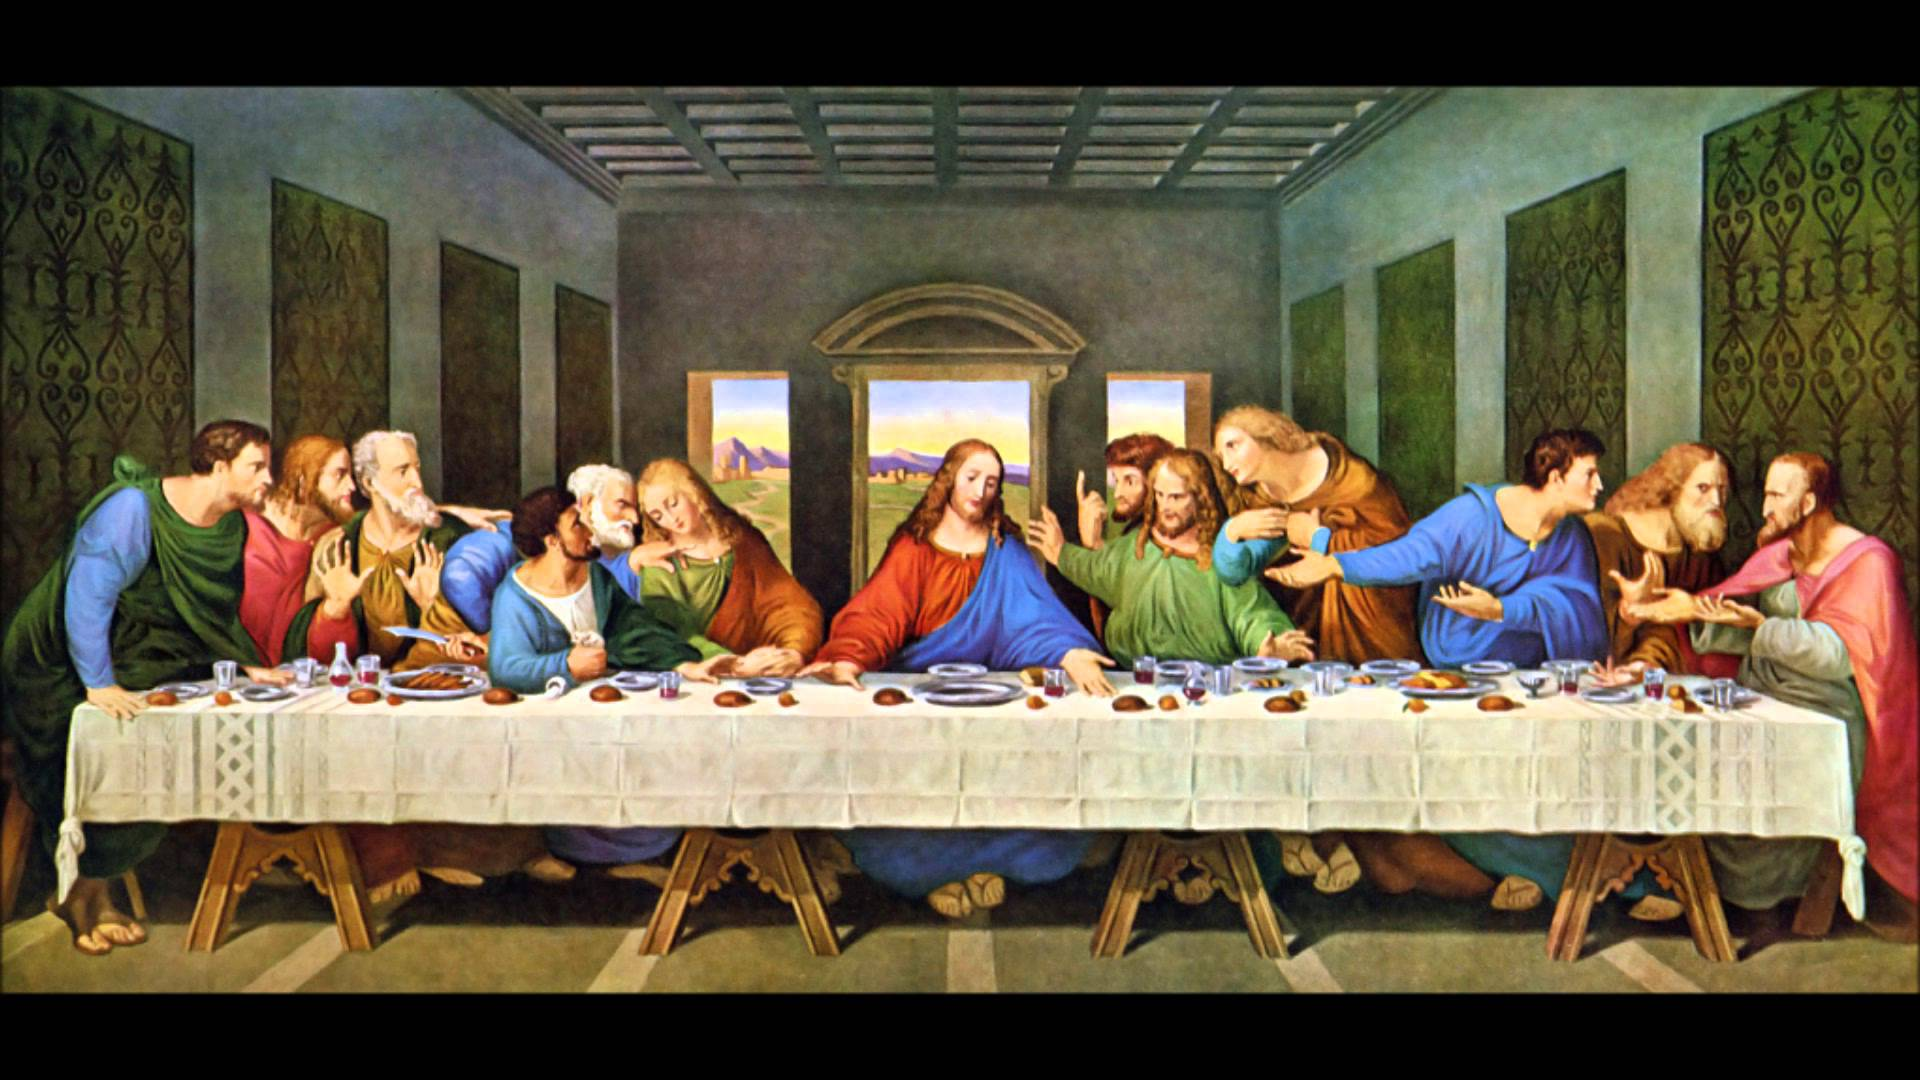 comparing the last supper